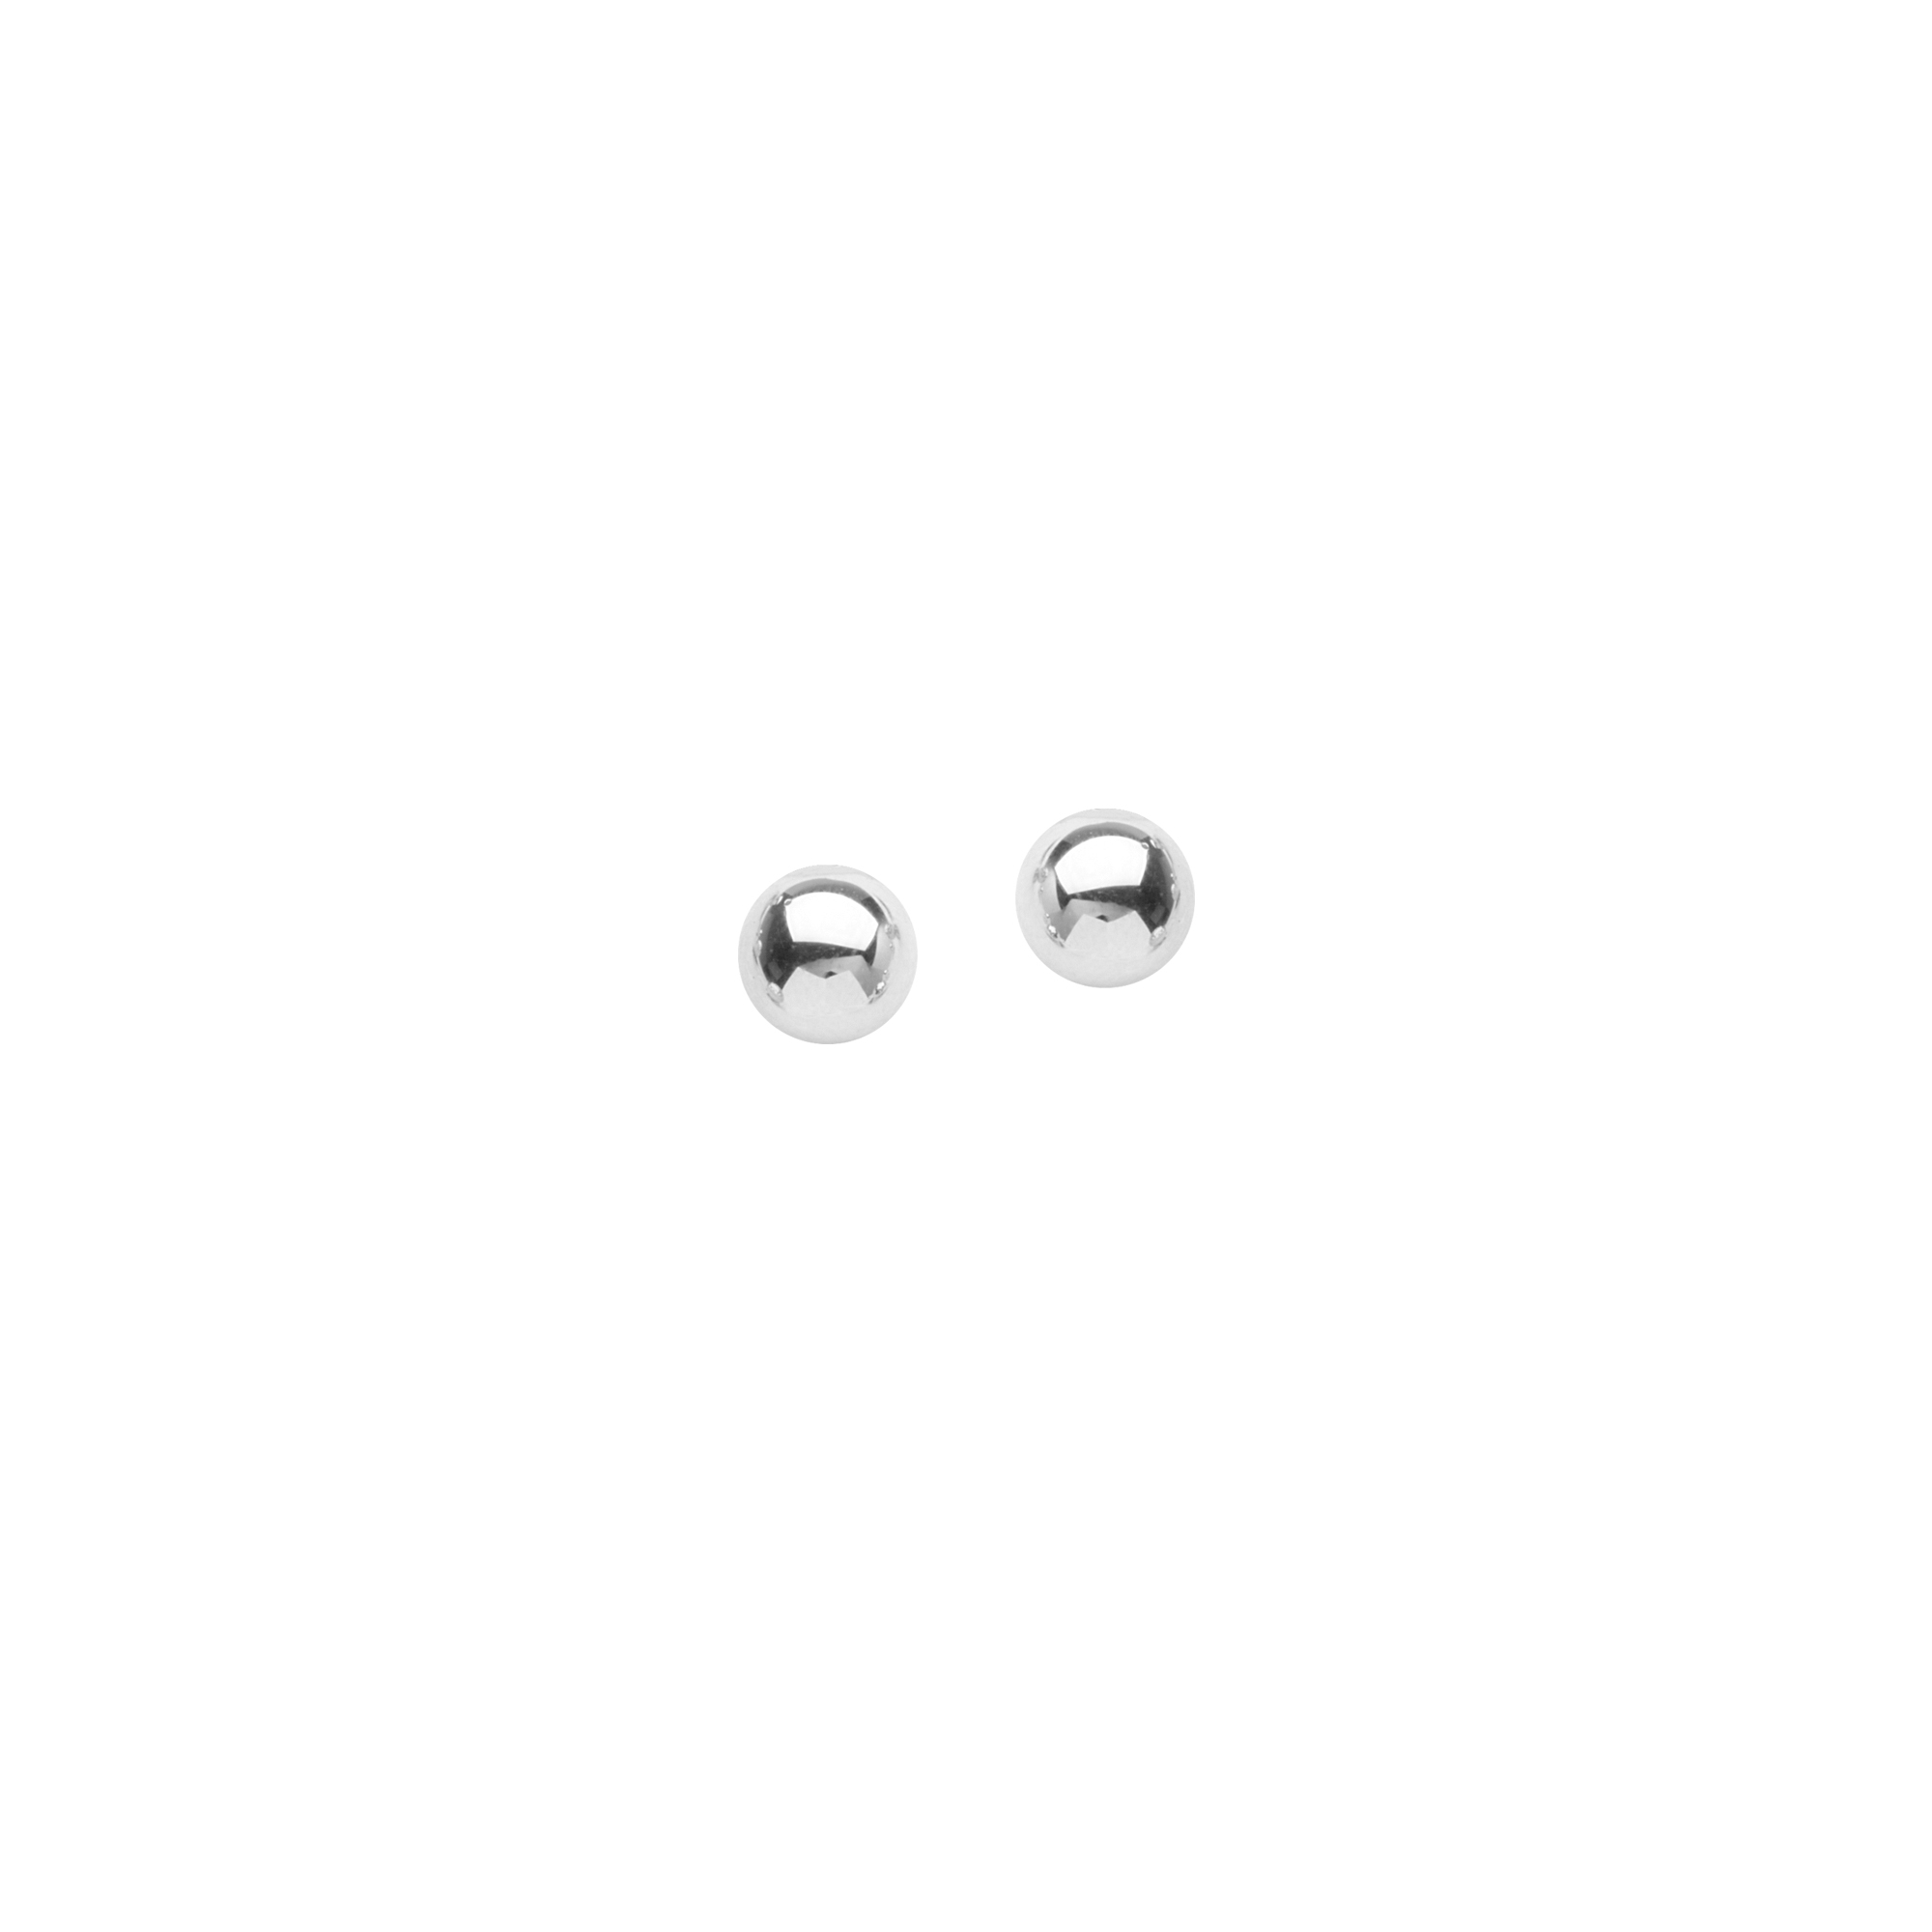 Ball Earrings , 5 Mm Ball Stud Earrings